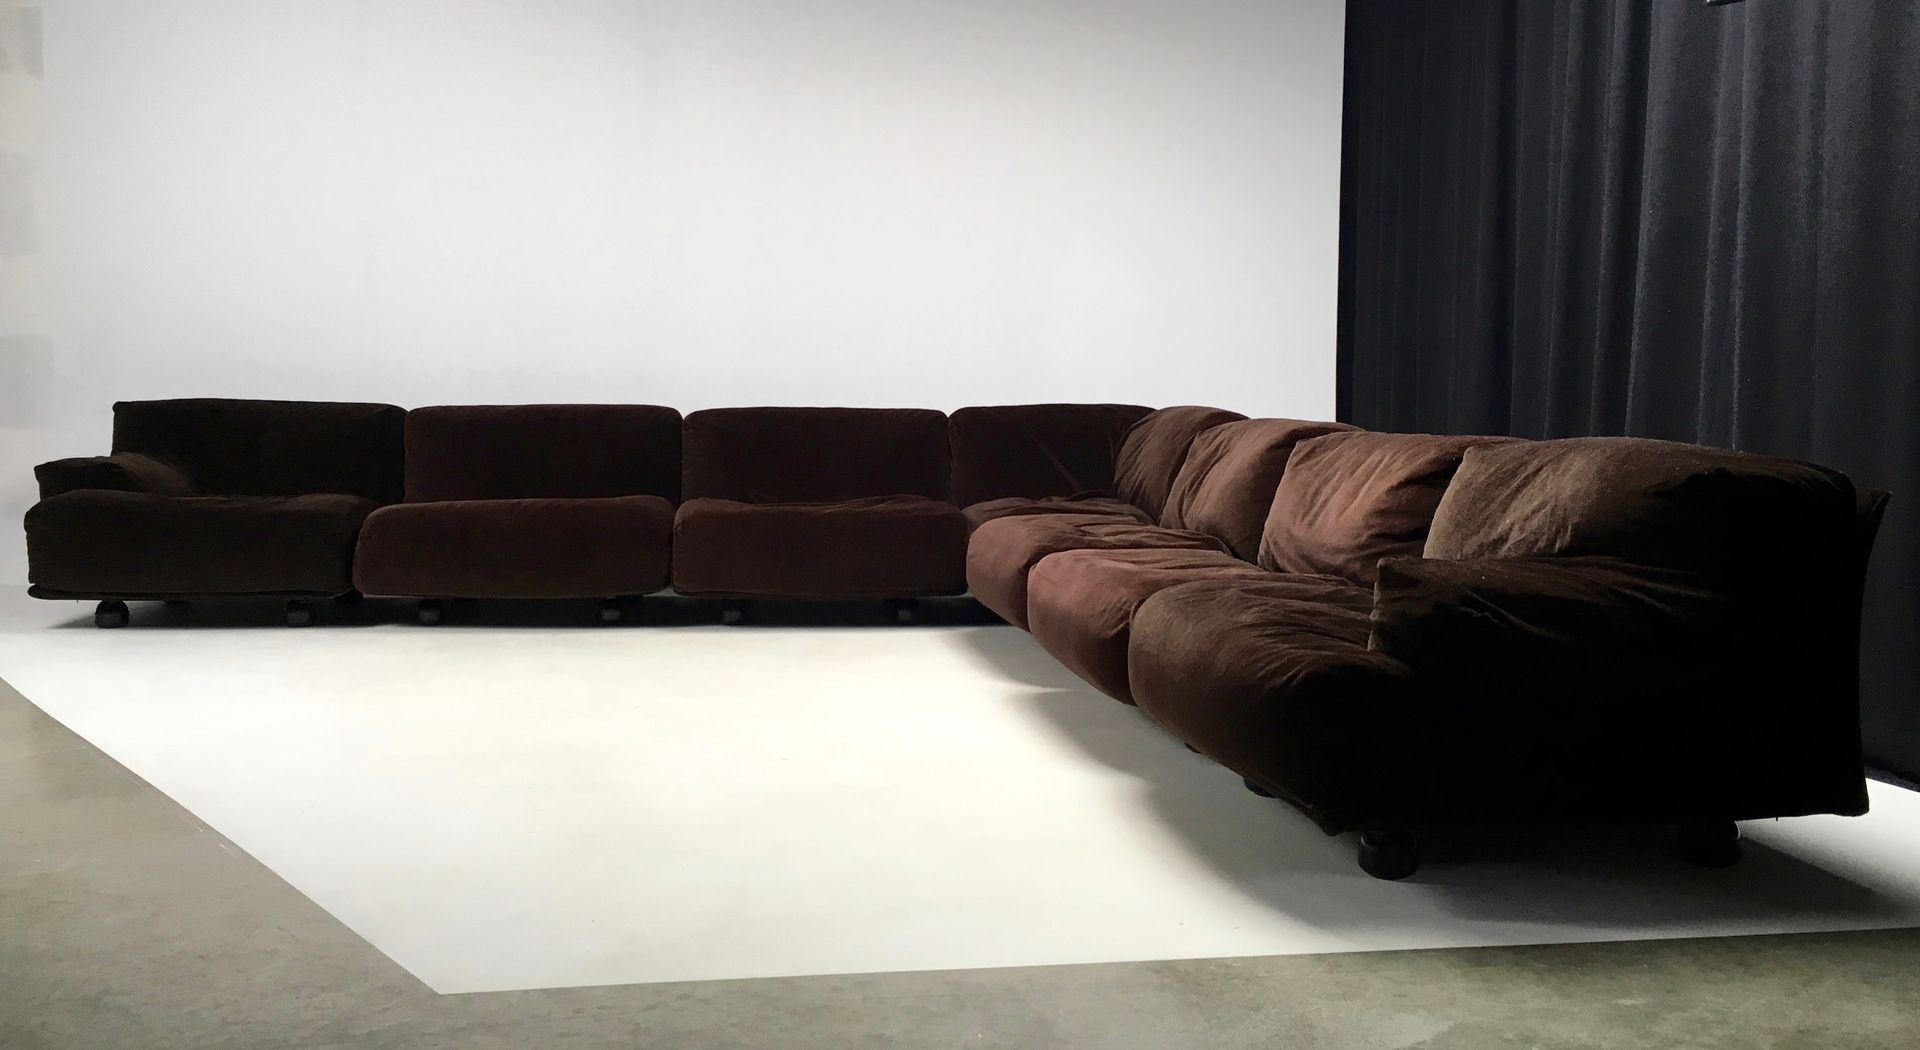 large modular fiandra sofa by vico magistretti for cassina 1977 4